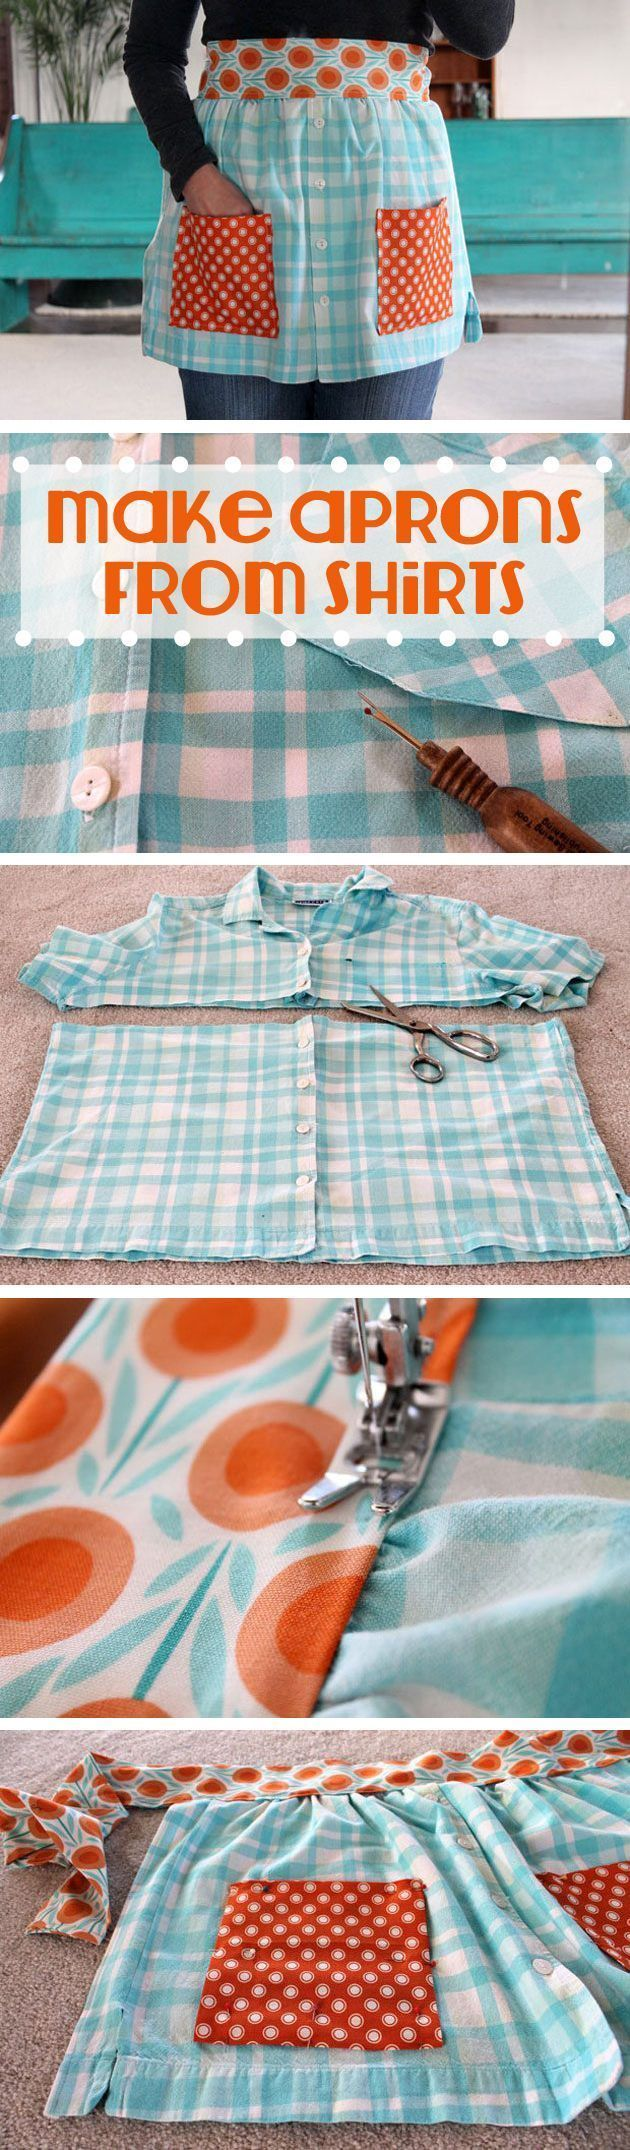 Make an adorable DIY apron from old t-shirts! Beth Huntington has the best ideas for transforming old shirts and things into new, fashion-forward wearable items. This is great for beginner sewers or experienced ones!